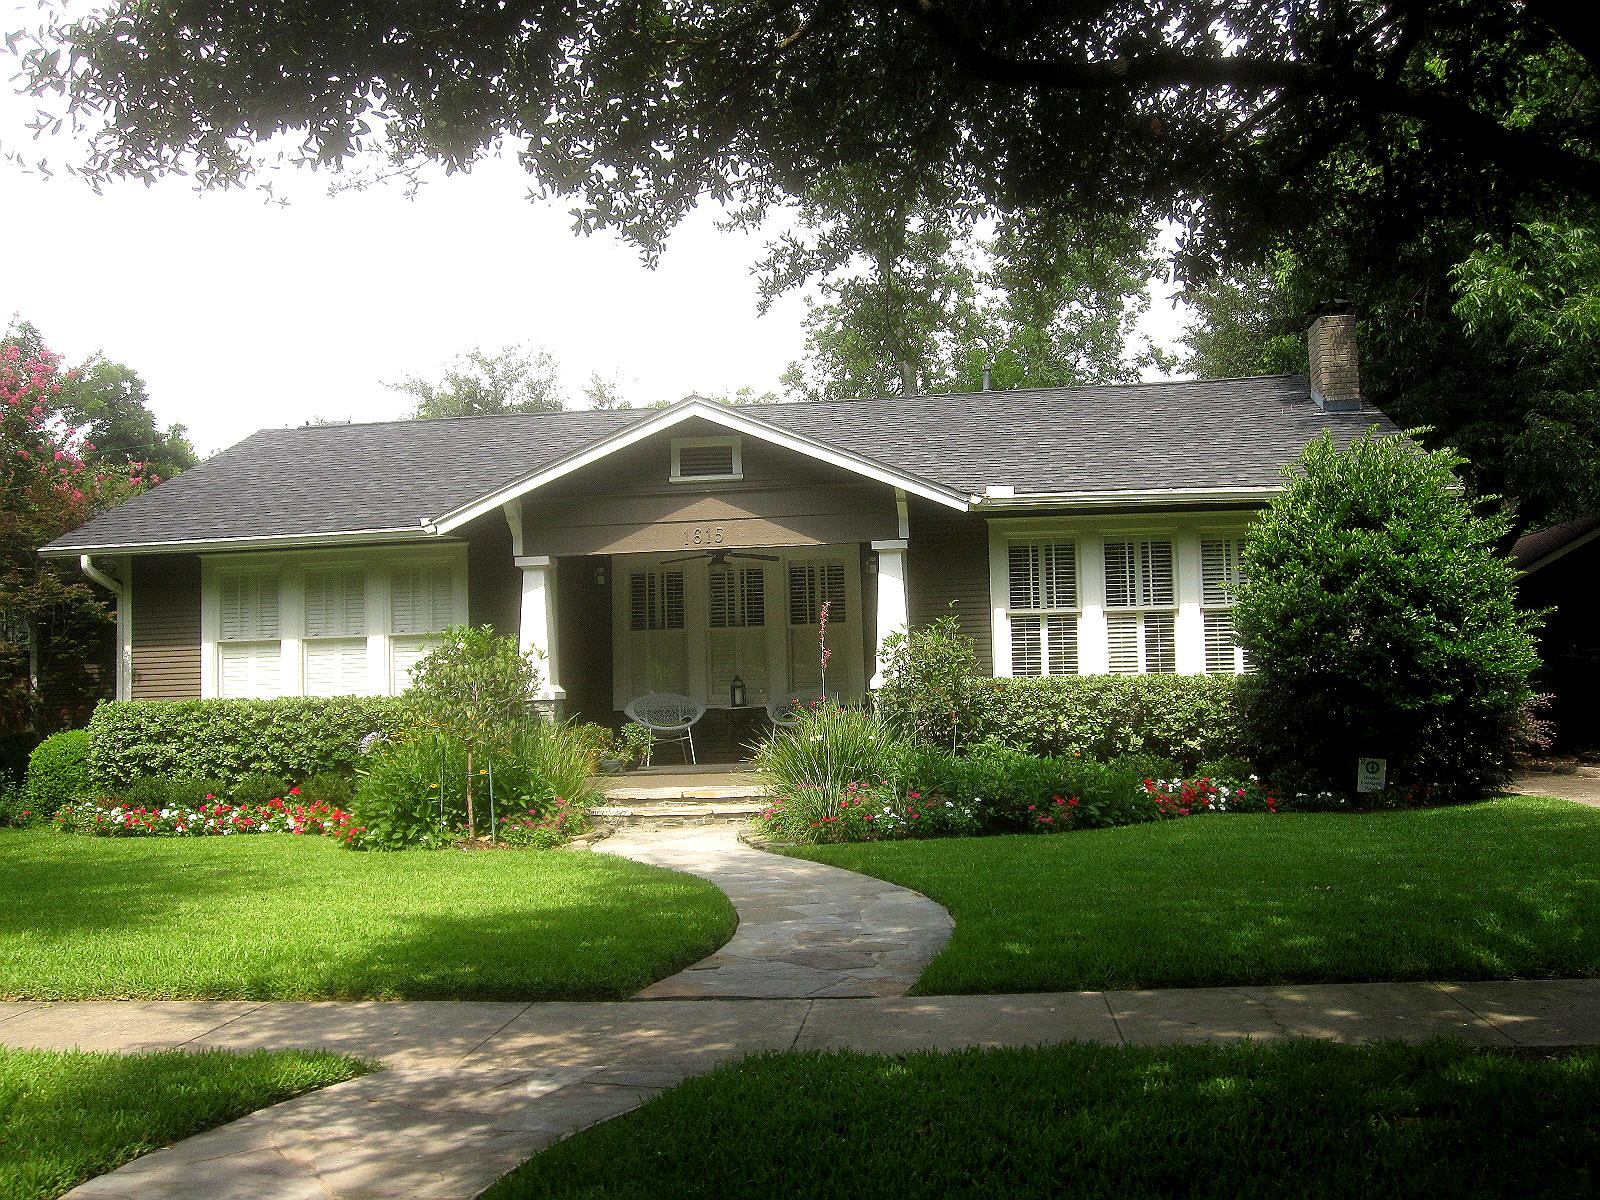 The other houston bungalow front yard garden ideas for Small front of house landscaping